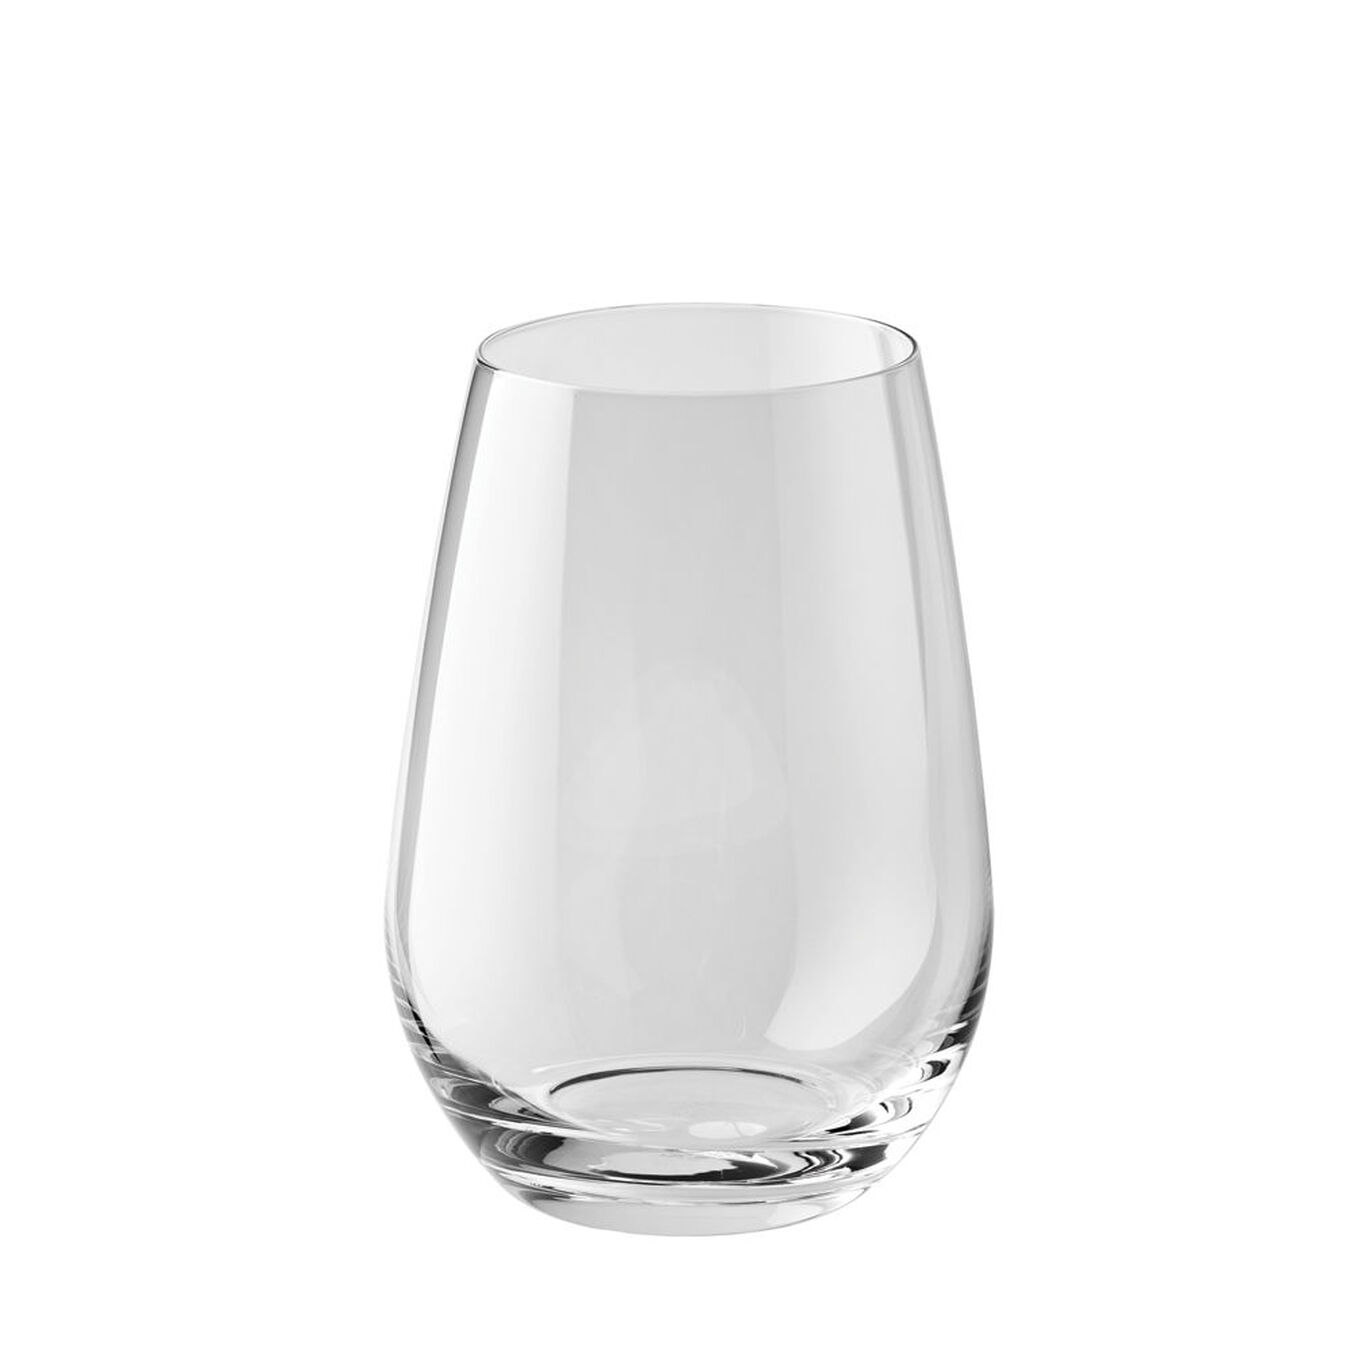 6 Piece Beverage Glass 19.1 oz/566 ml,,large 1